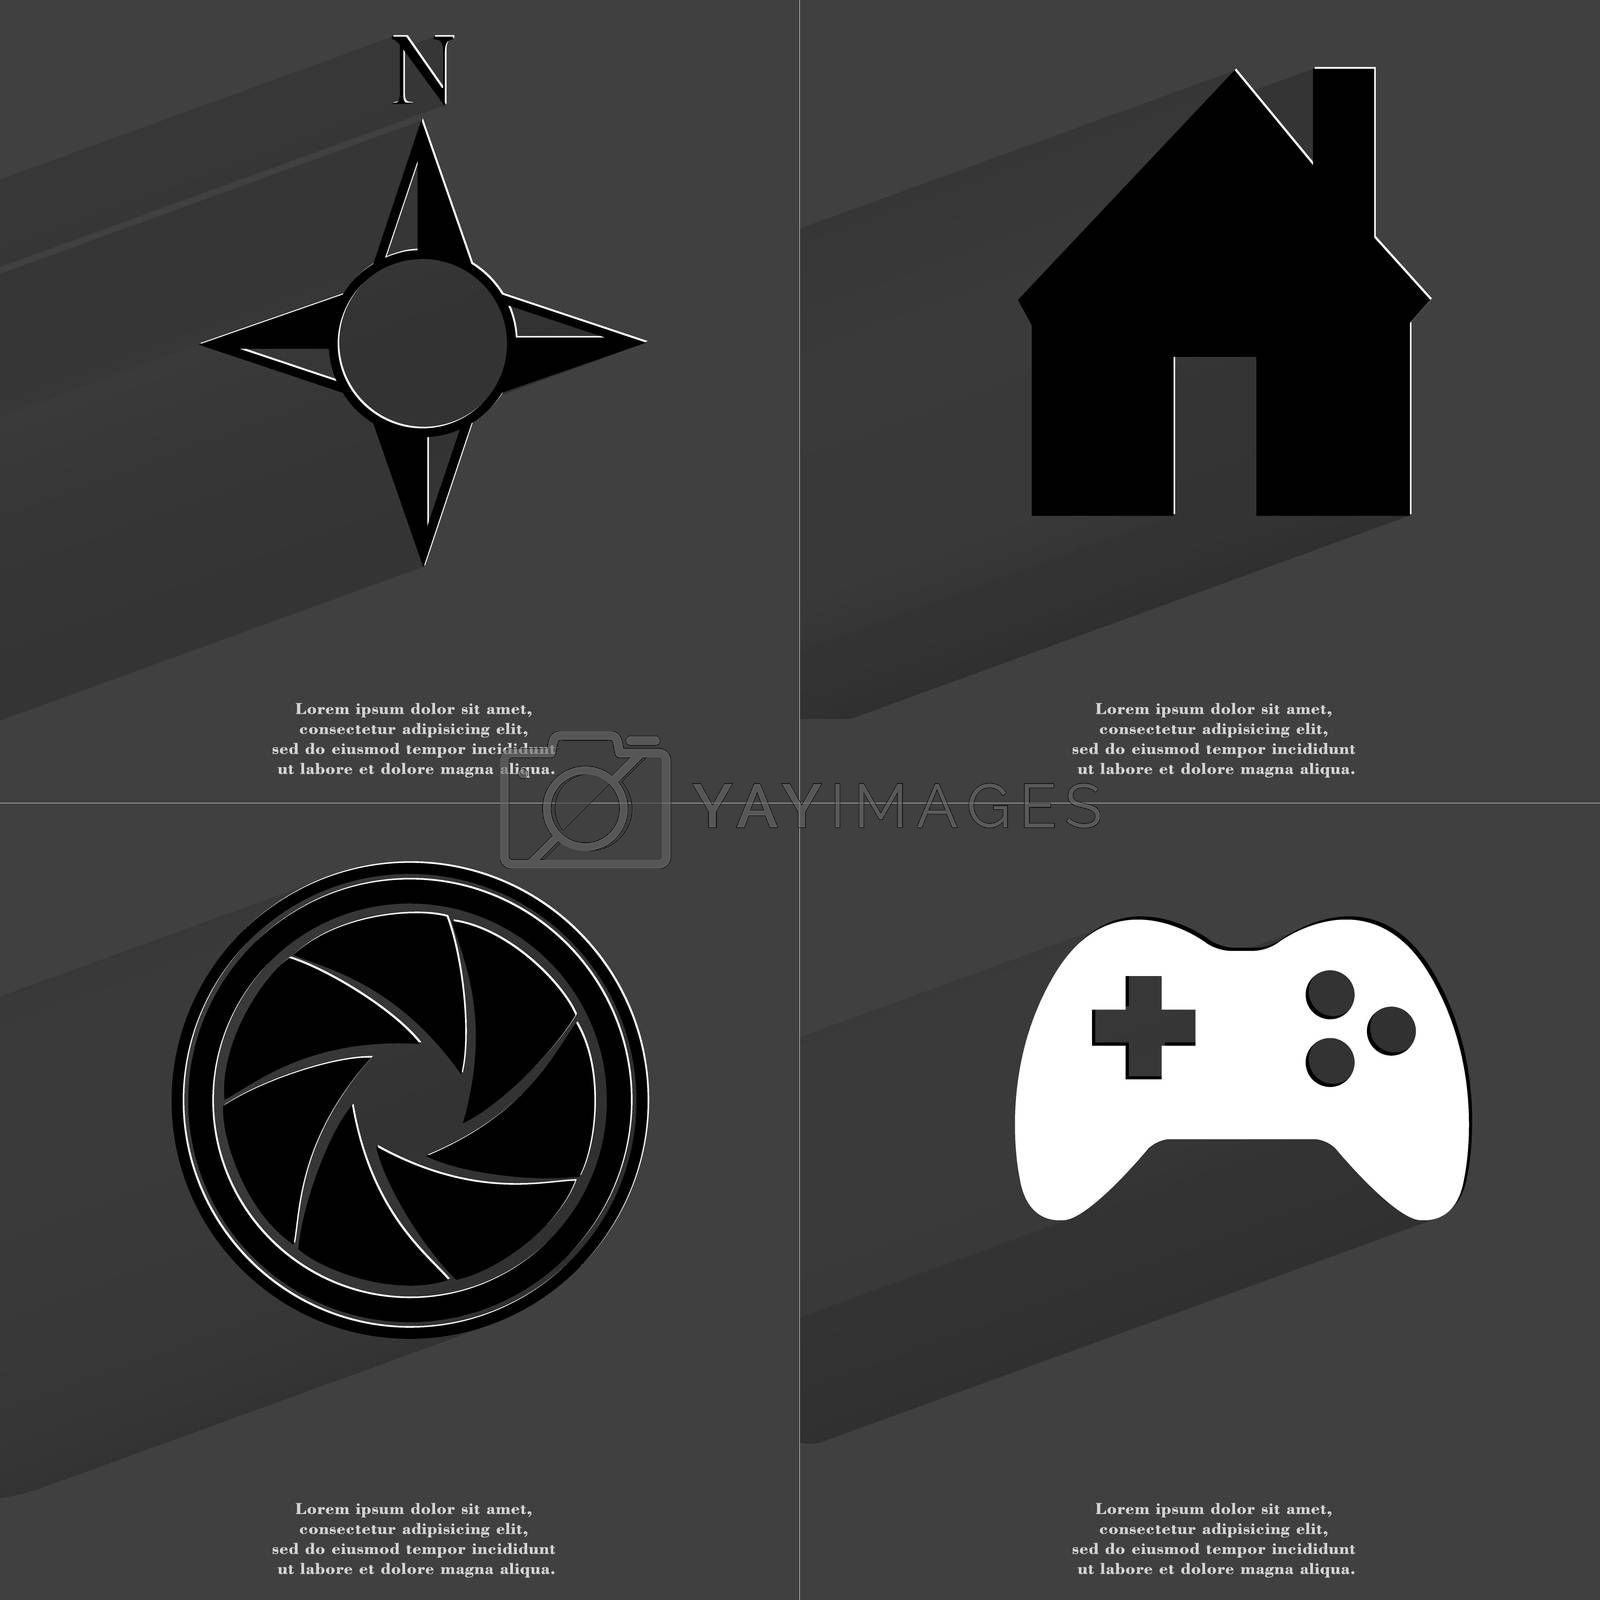 Royalty free image of Compass, House, Lens, Gamepad. Symbols with long shadow. Flat design by serhii_lohvyniuk